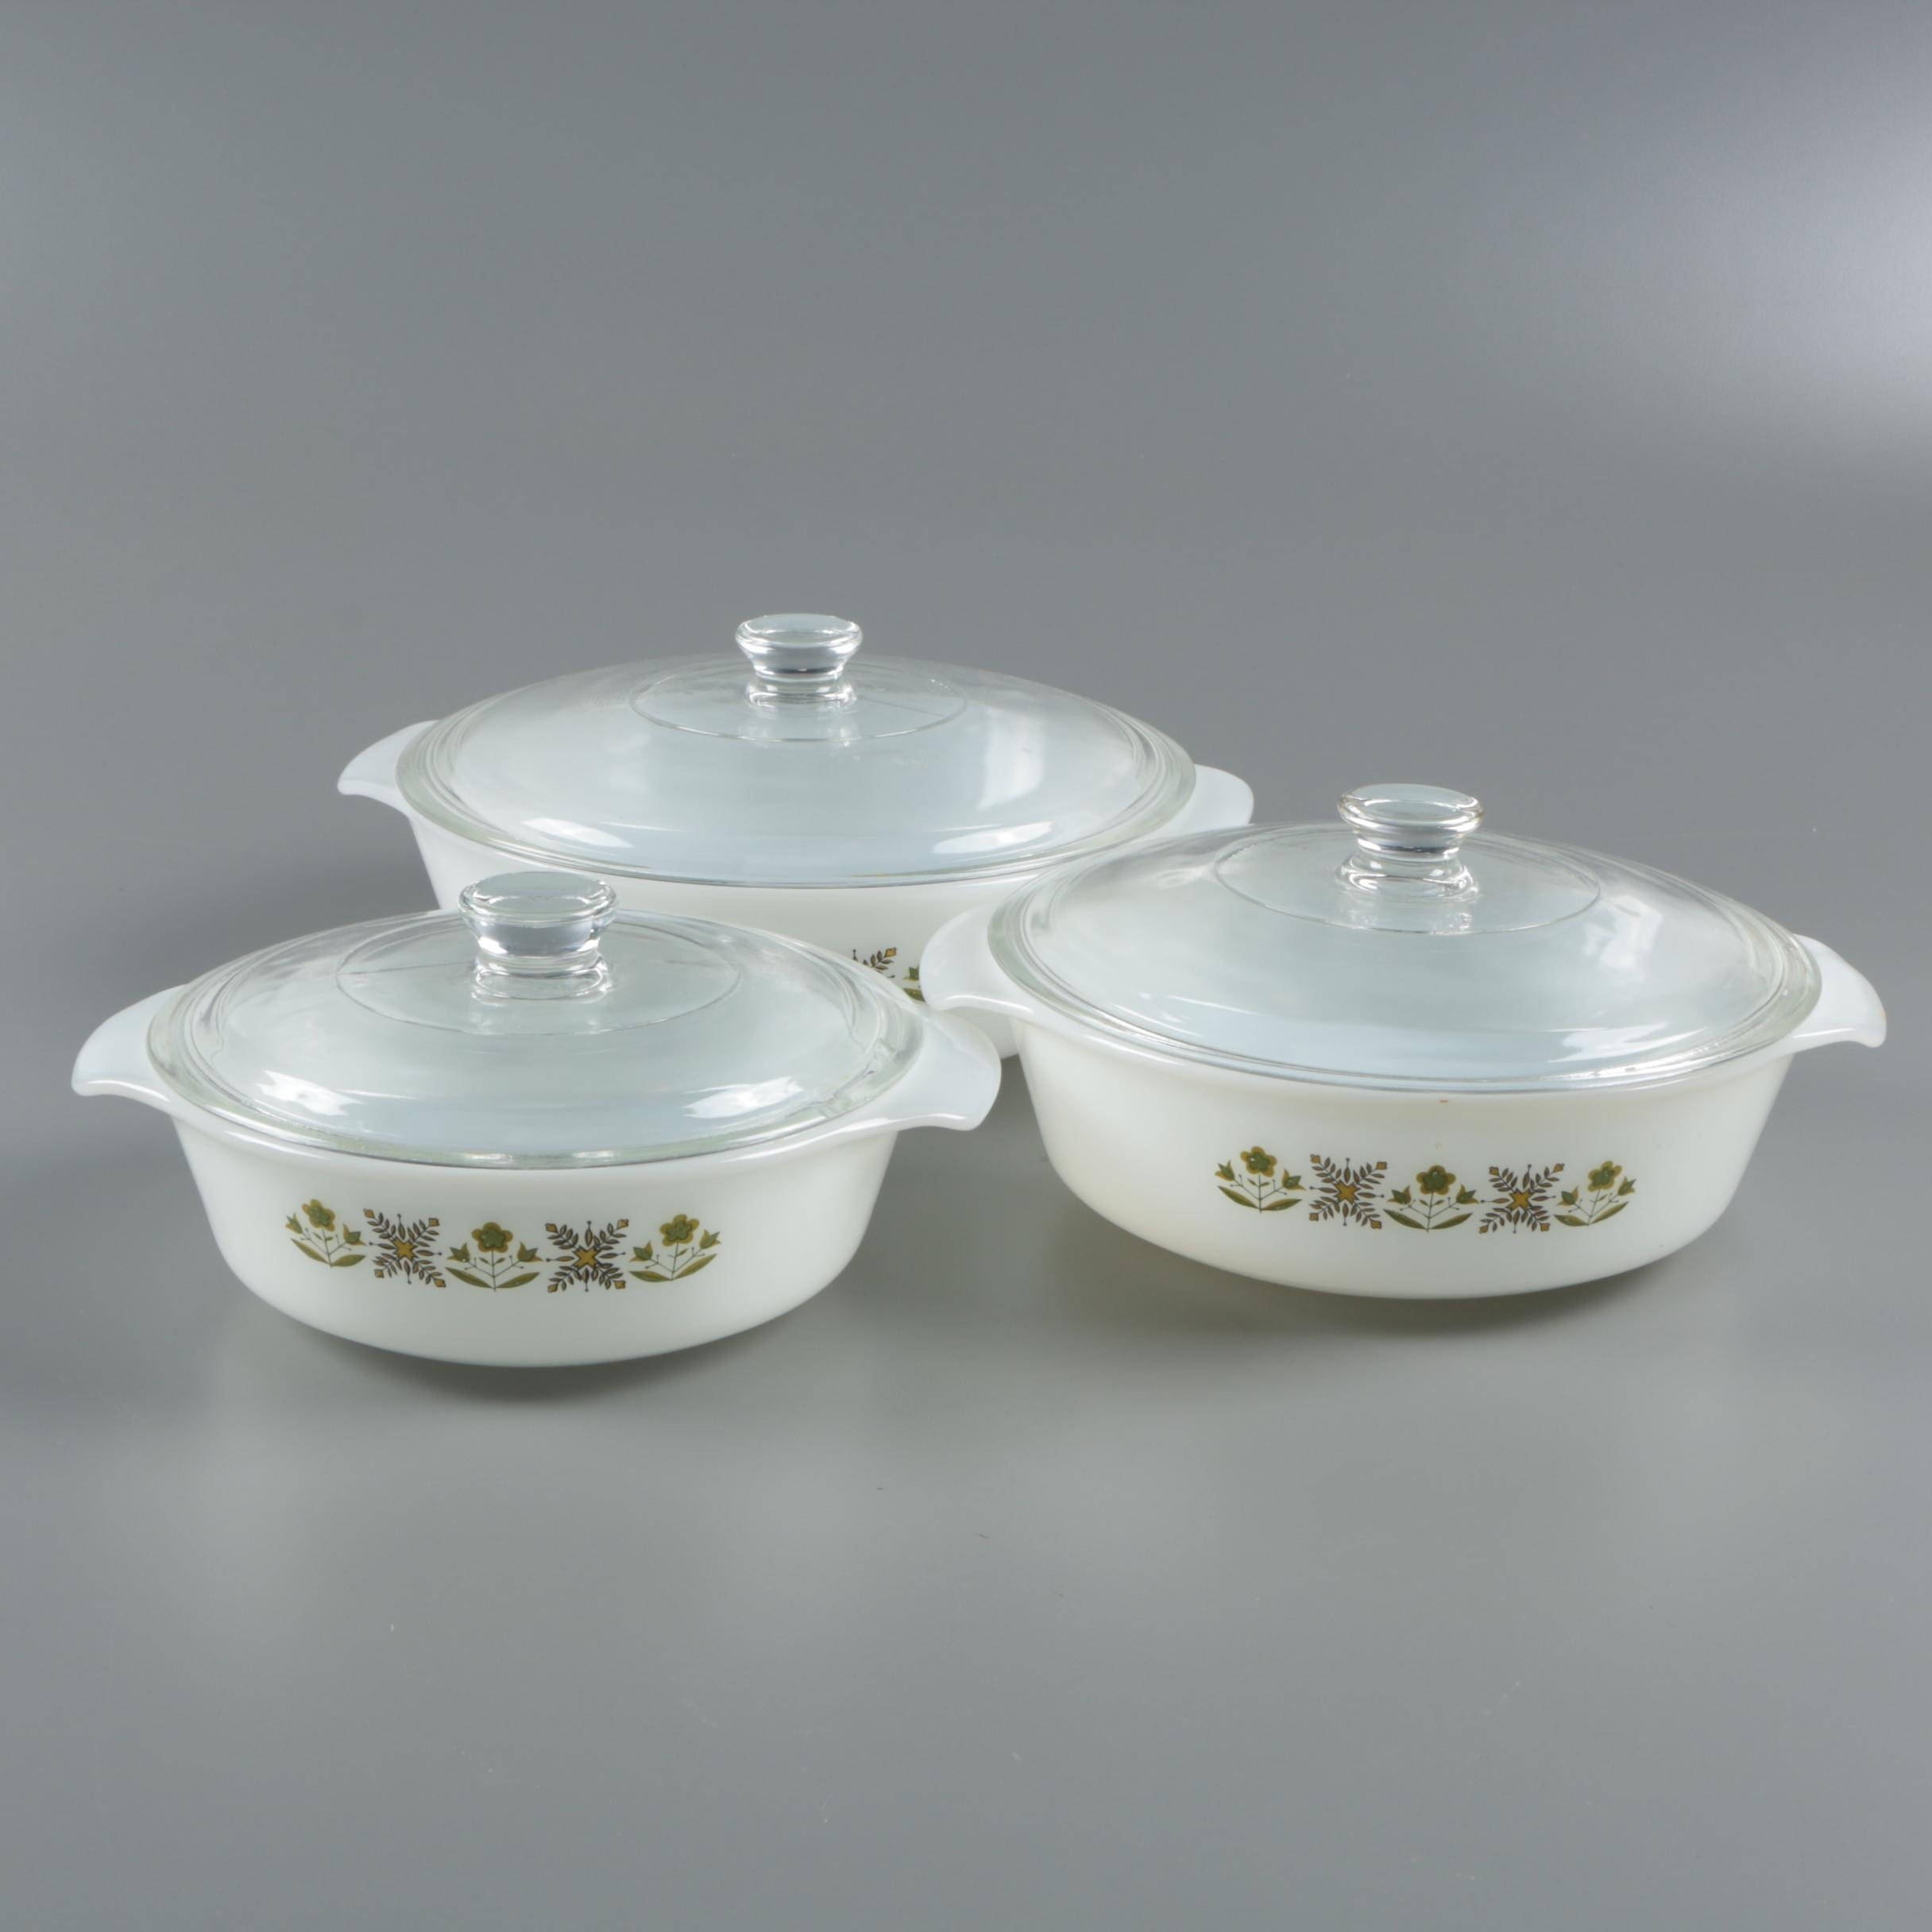 "Anchor Hocking Fire-King ""Meadow Green"" Milk Glass Casserole Dishes c. 1968-76"